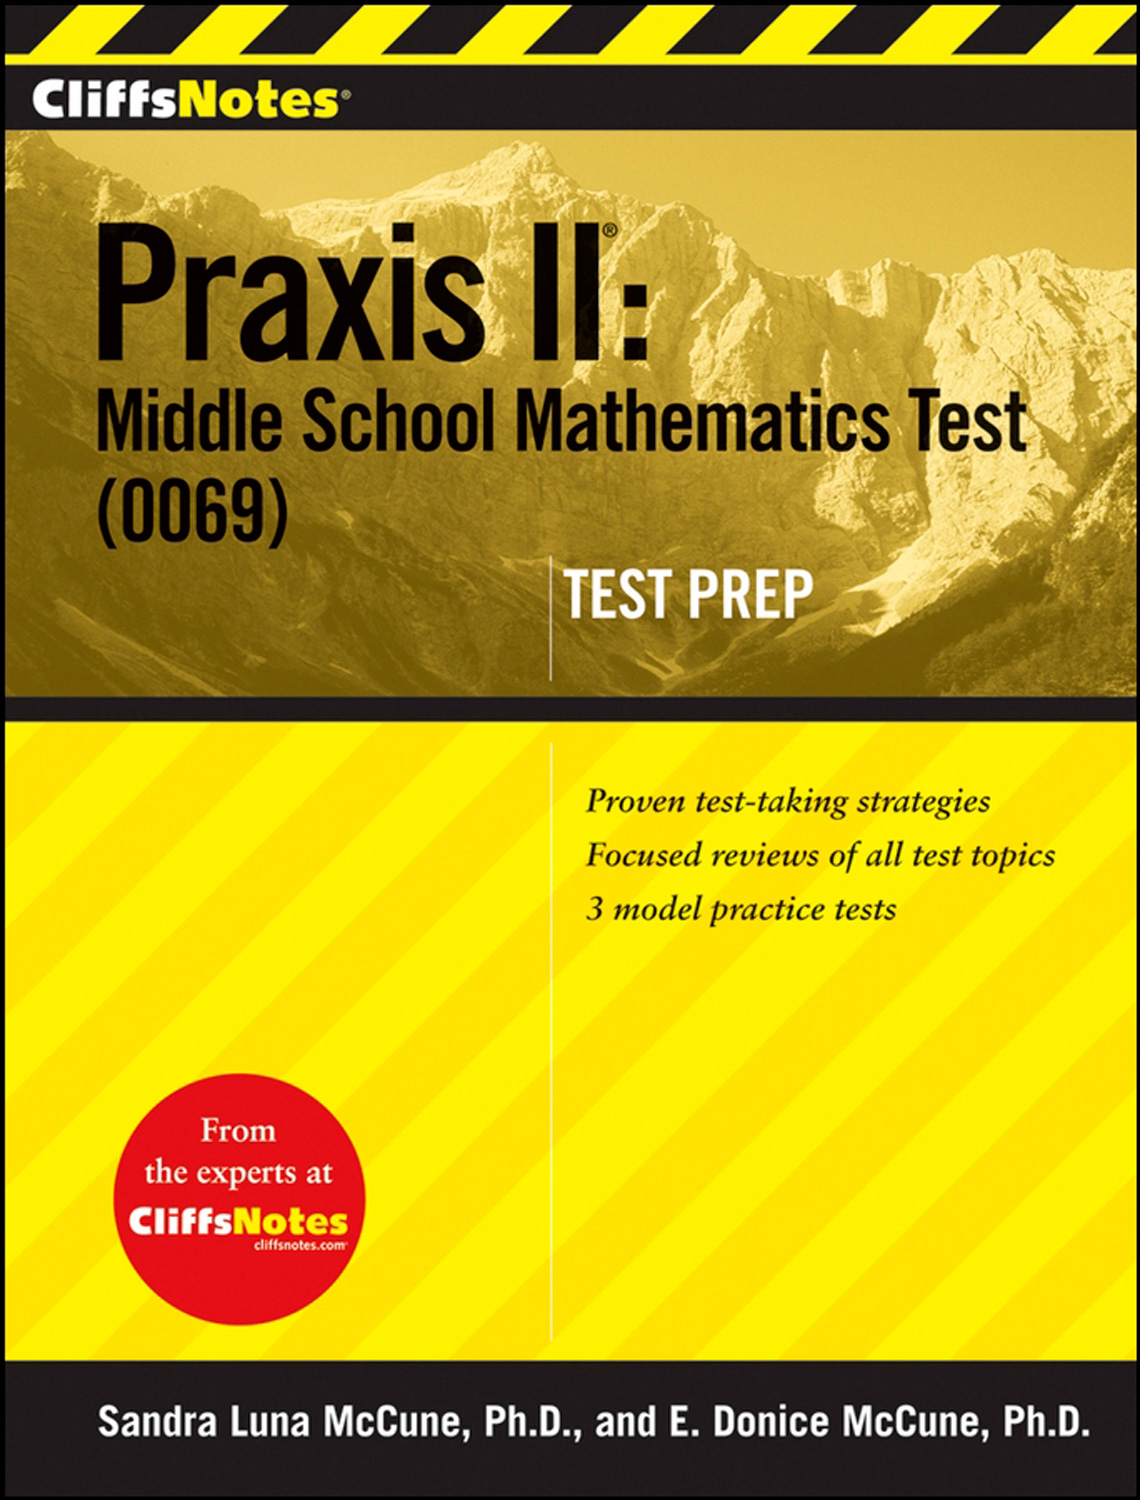 CliffsNotes Praxis II: Middle School Mathematics Test (0069) Test Prep-9780470278222